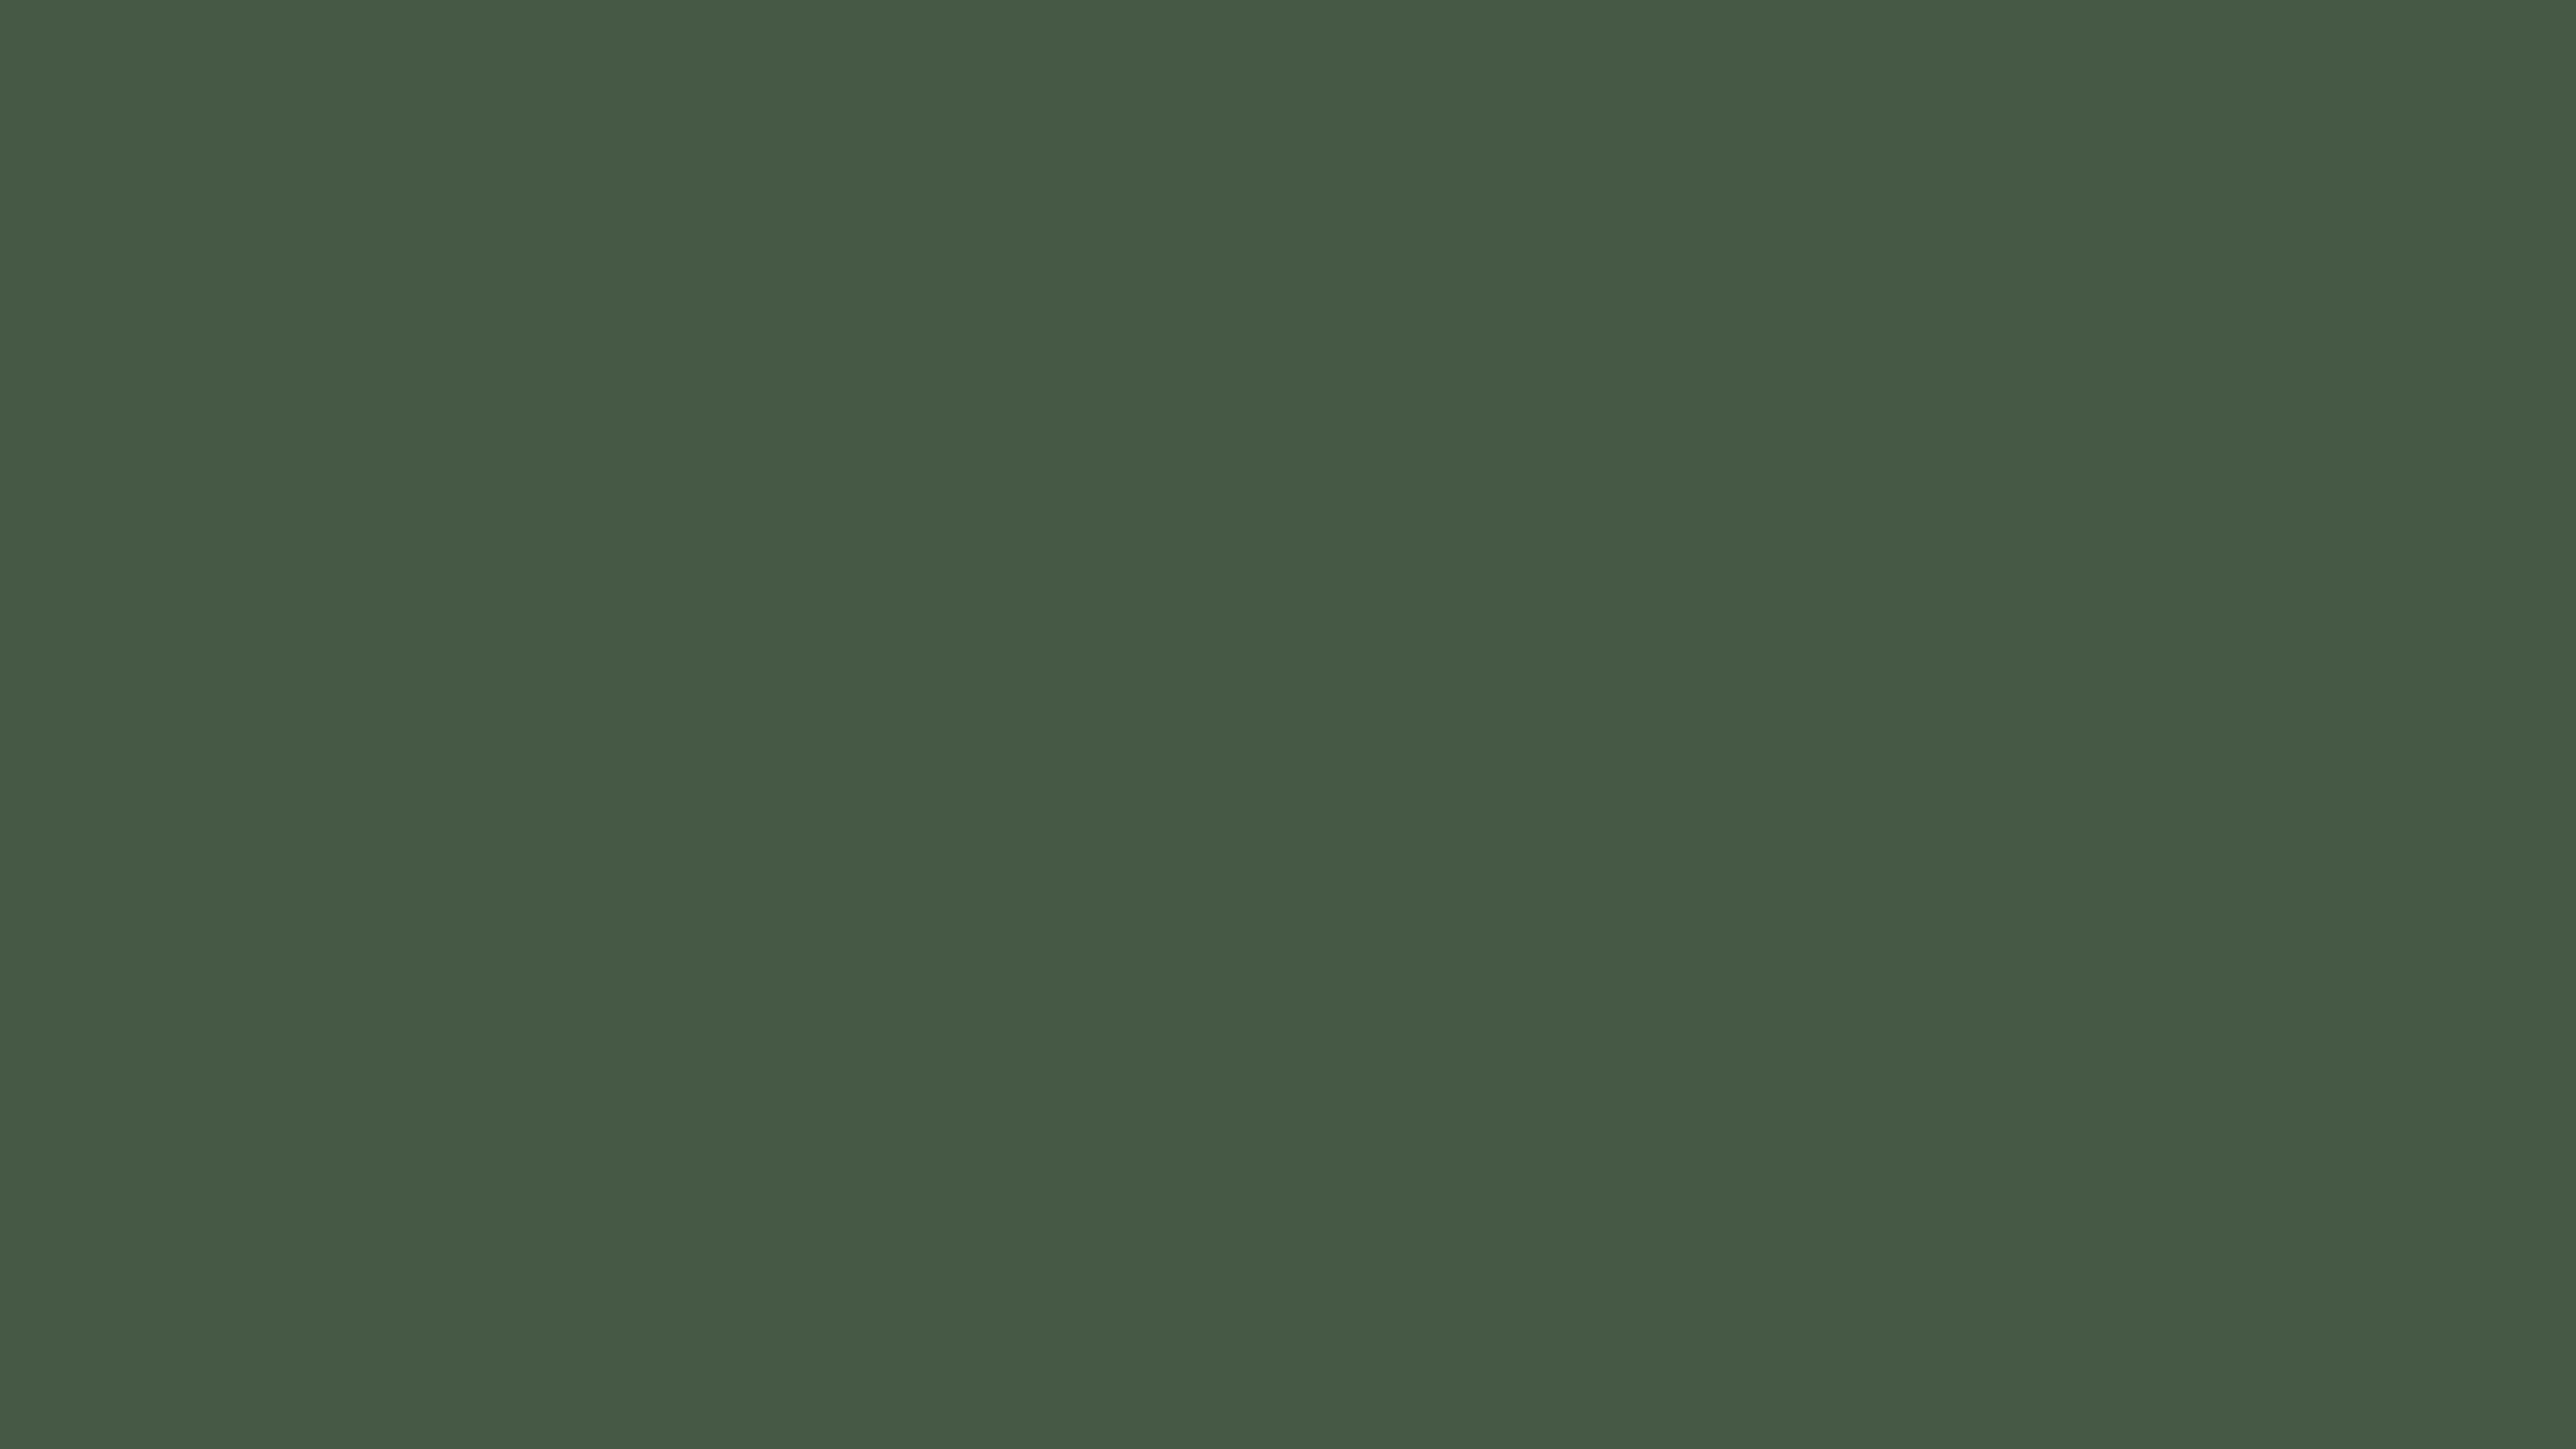 3840x2160 Gray-asparagus Solid Color Background